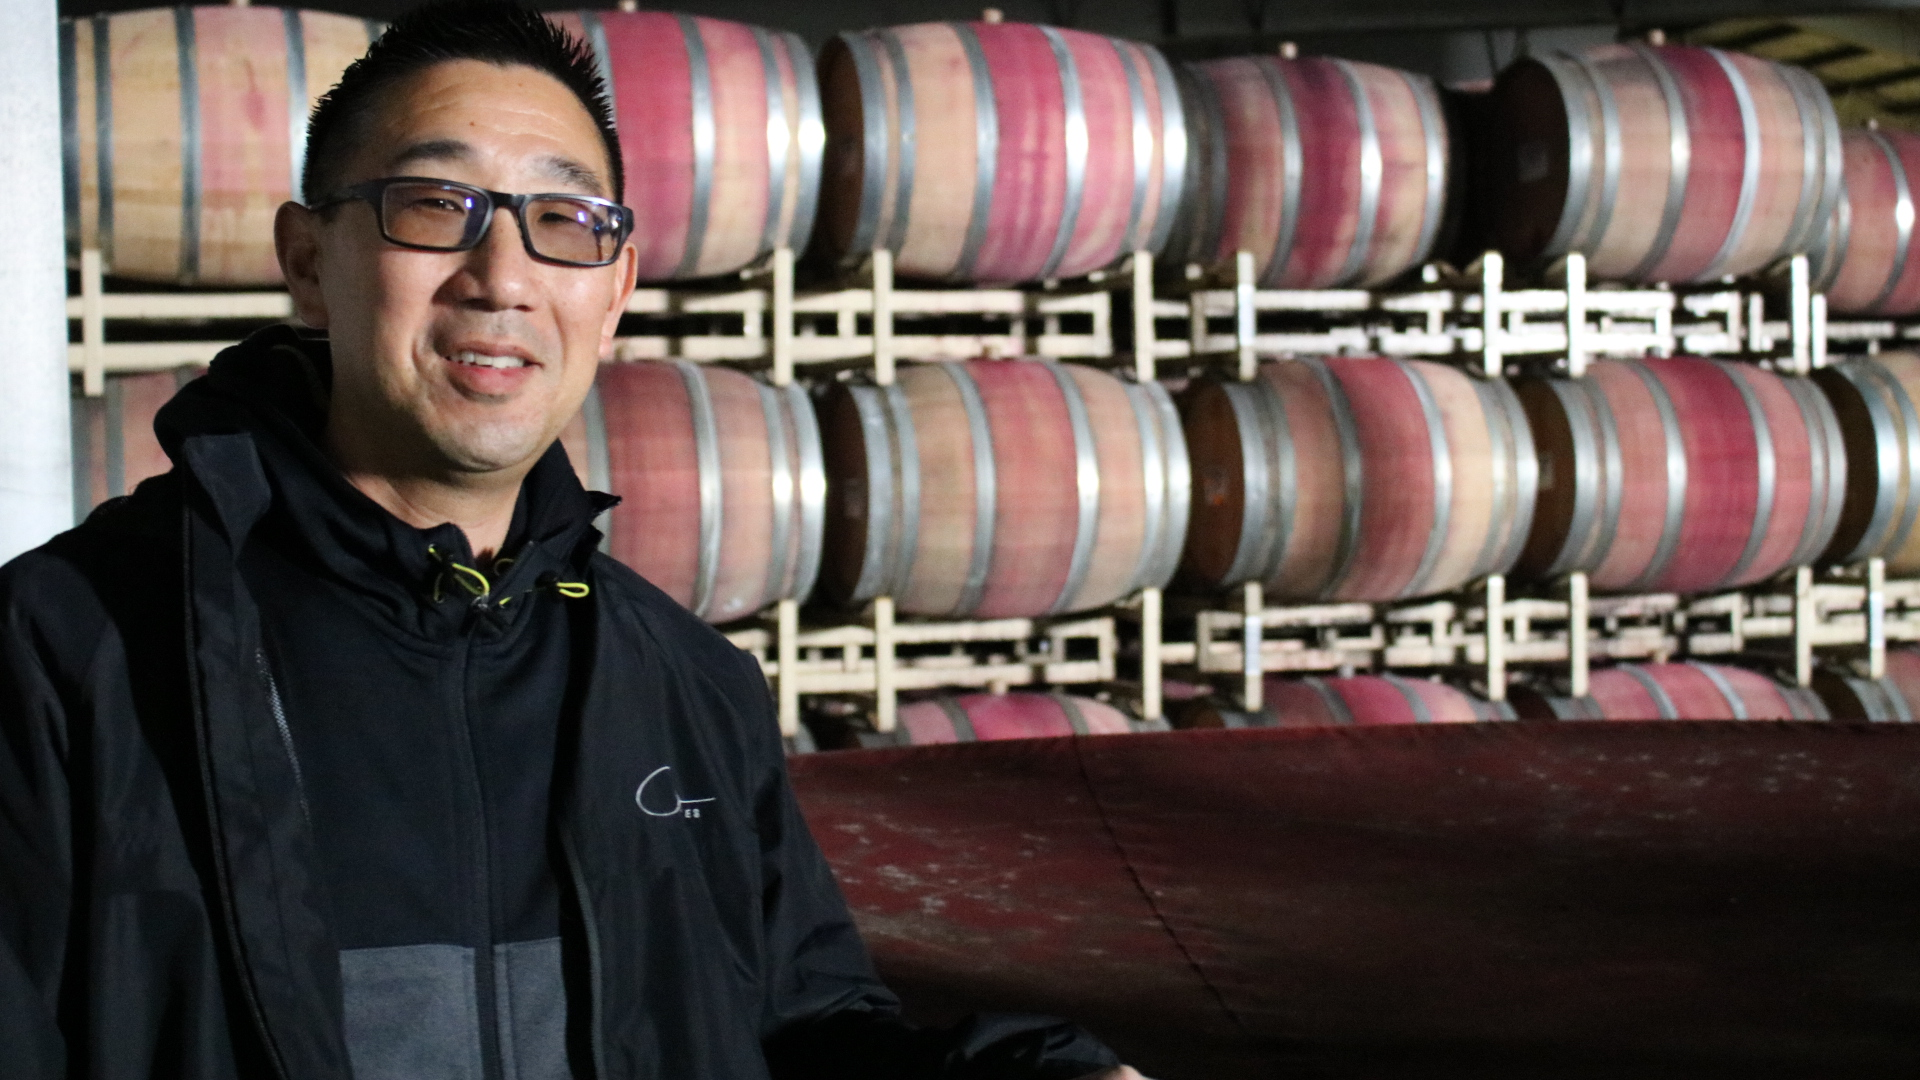 winemaker in cellar